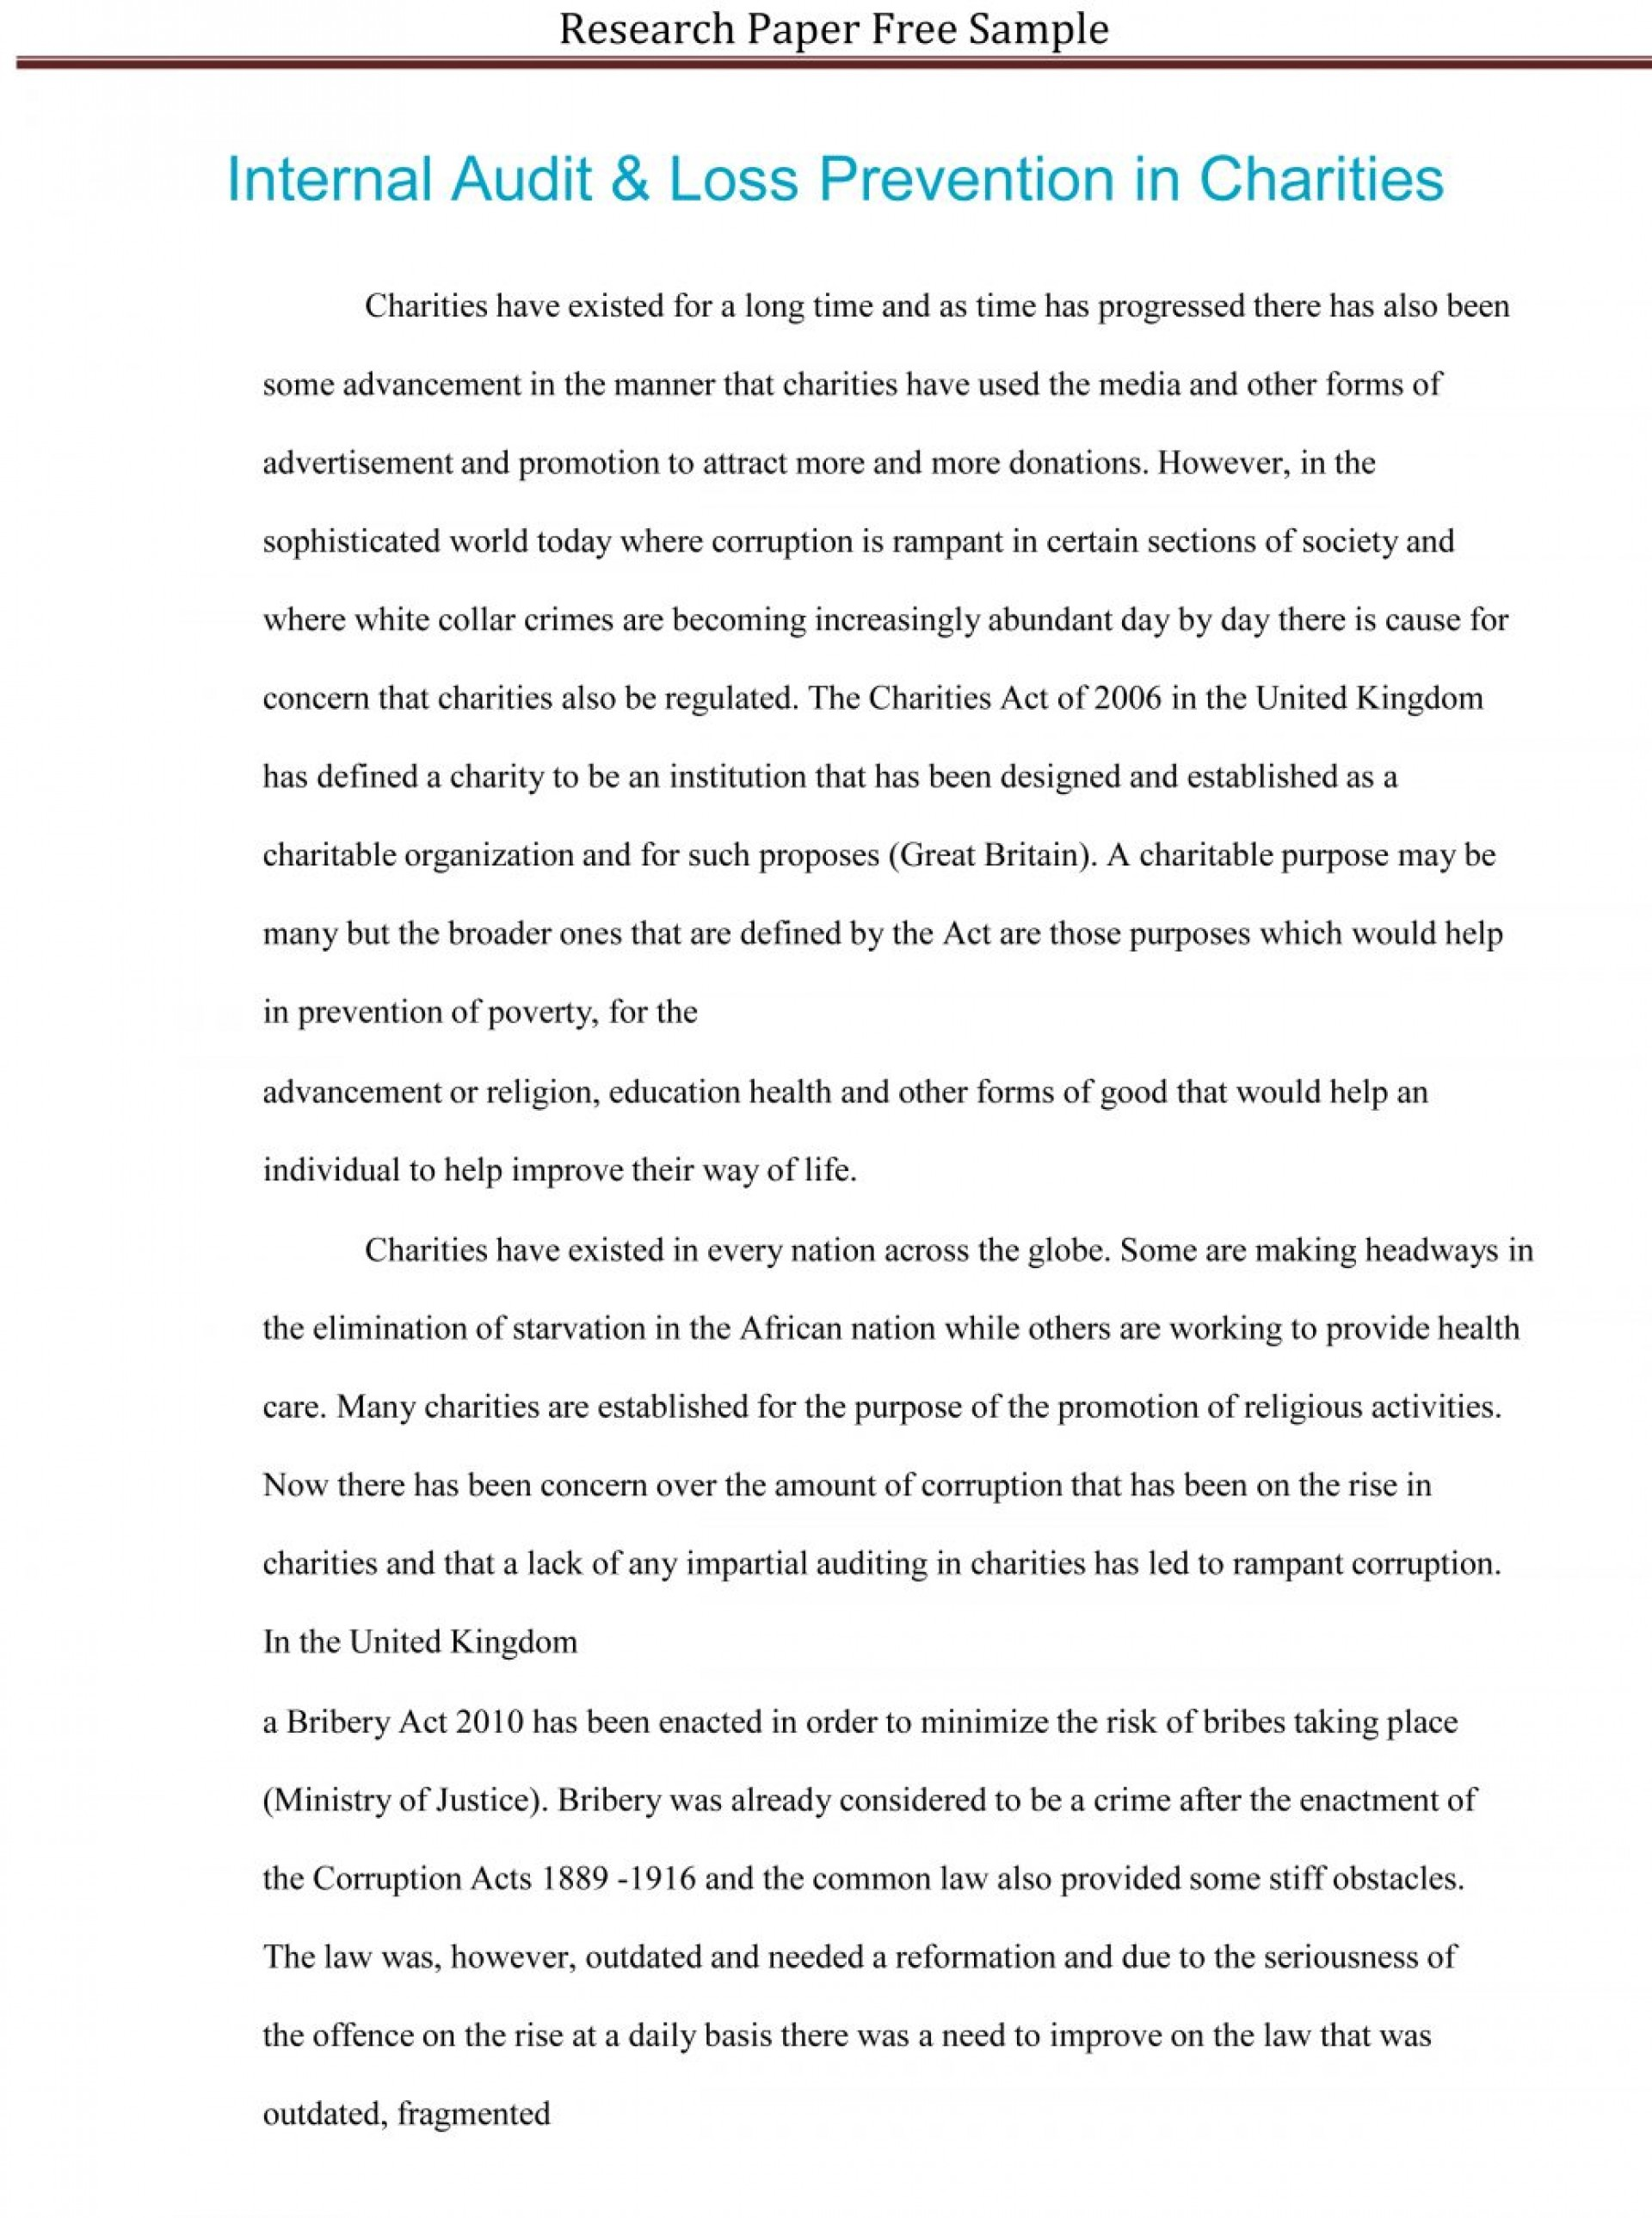 020 Argumentative Research Paper Thesis Examples Sample Essay Template For Essays Example Of Tremendous Image Best 1920